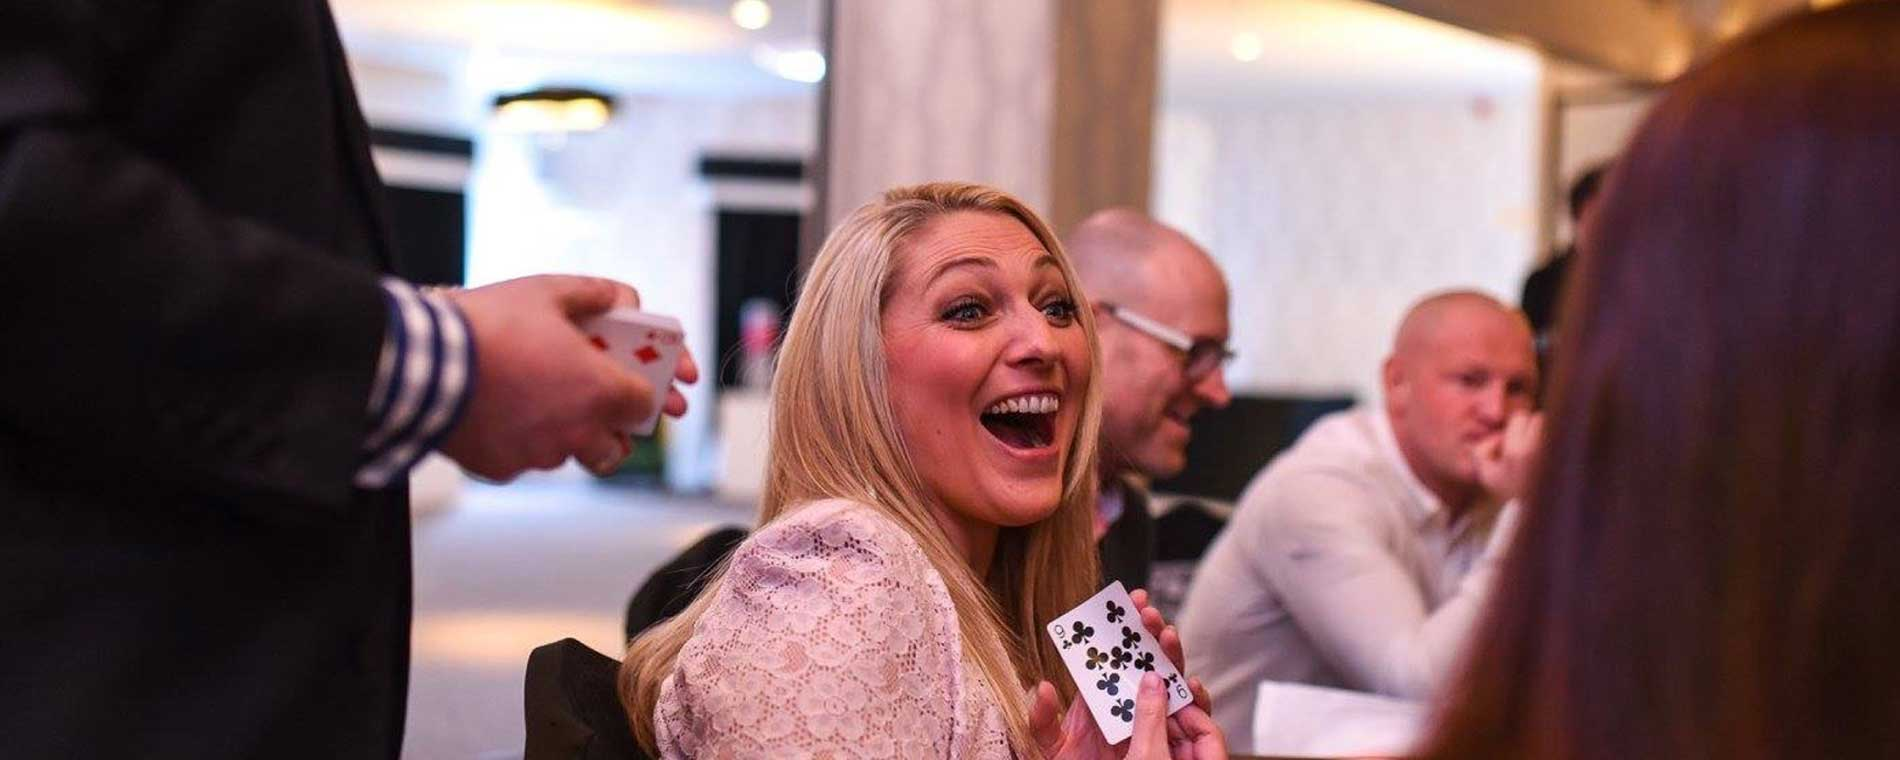 Surprise your guests with magic by Darren Robinson Wedding Magician